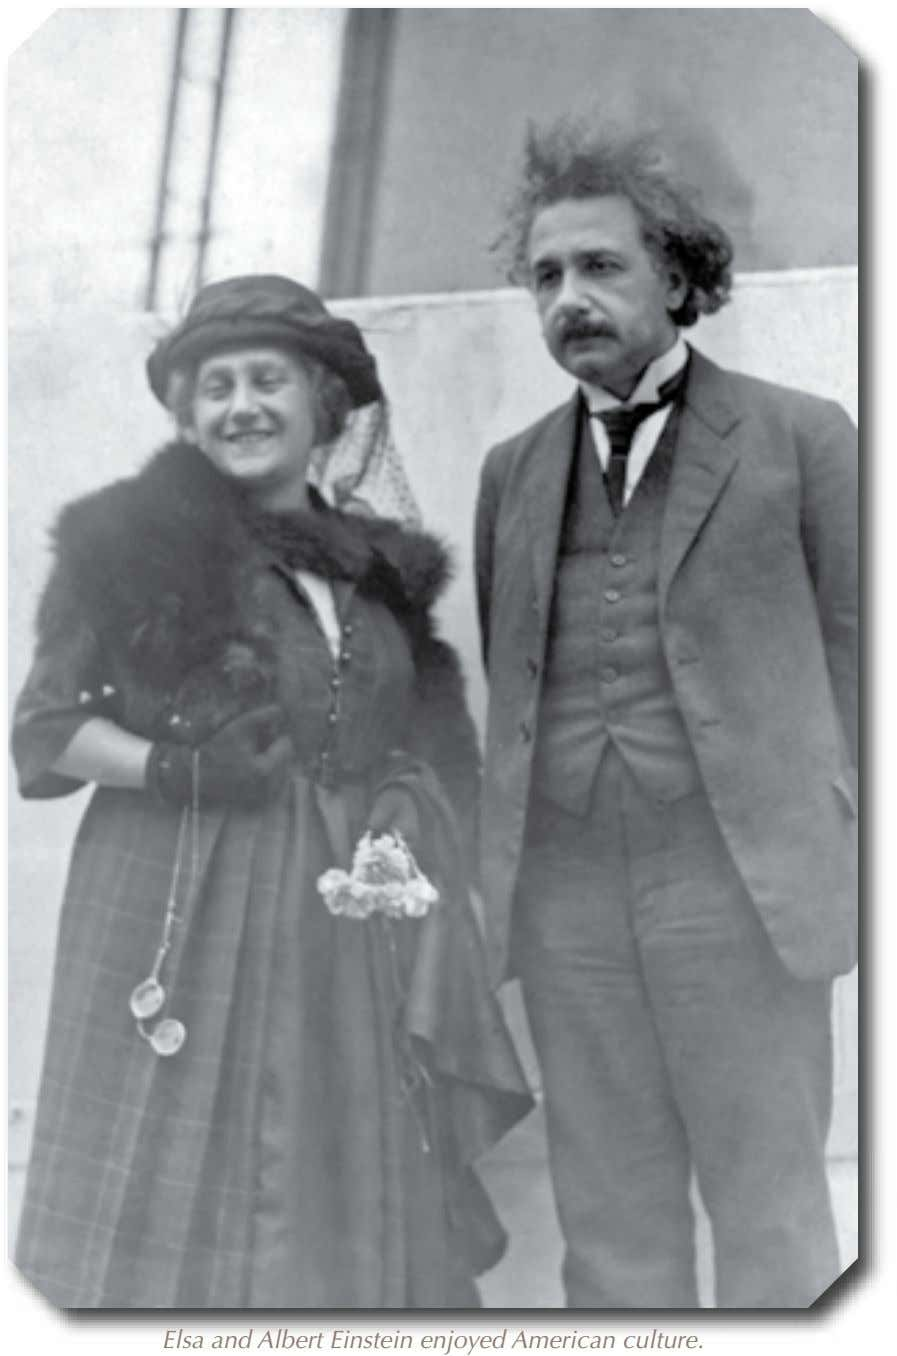 Elsa and Albert Einstein enjoyed American culture.